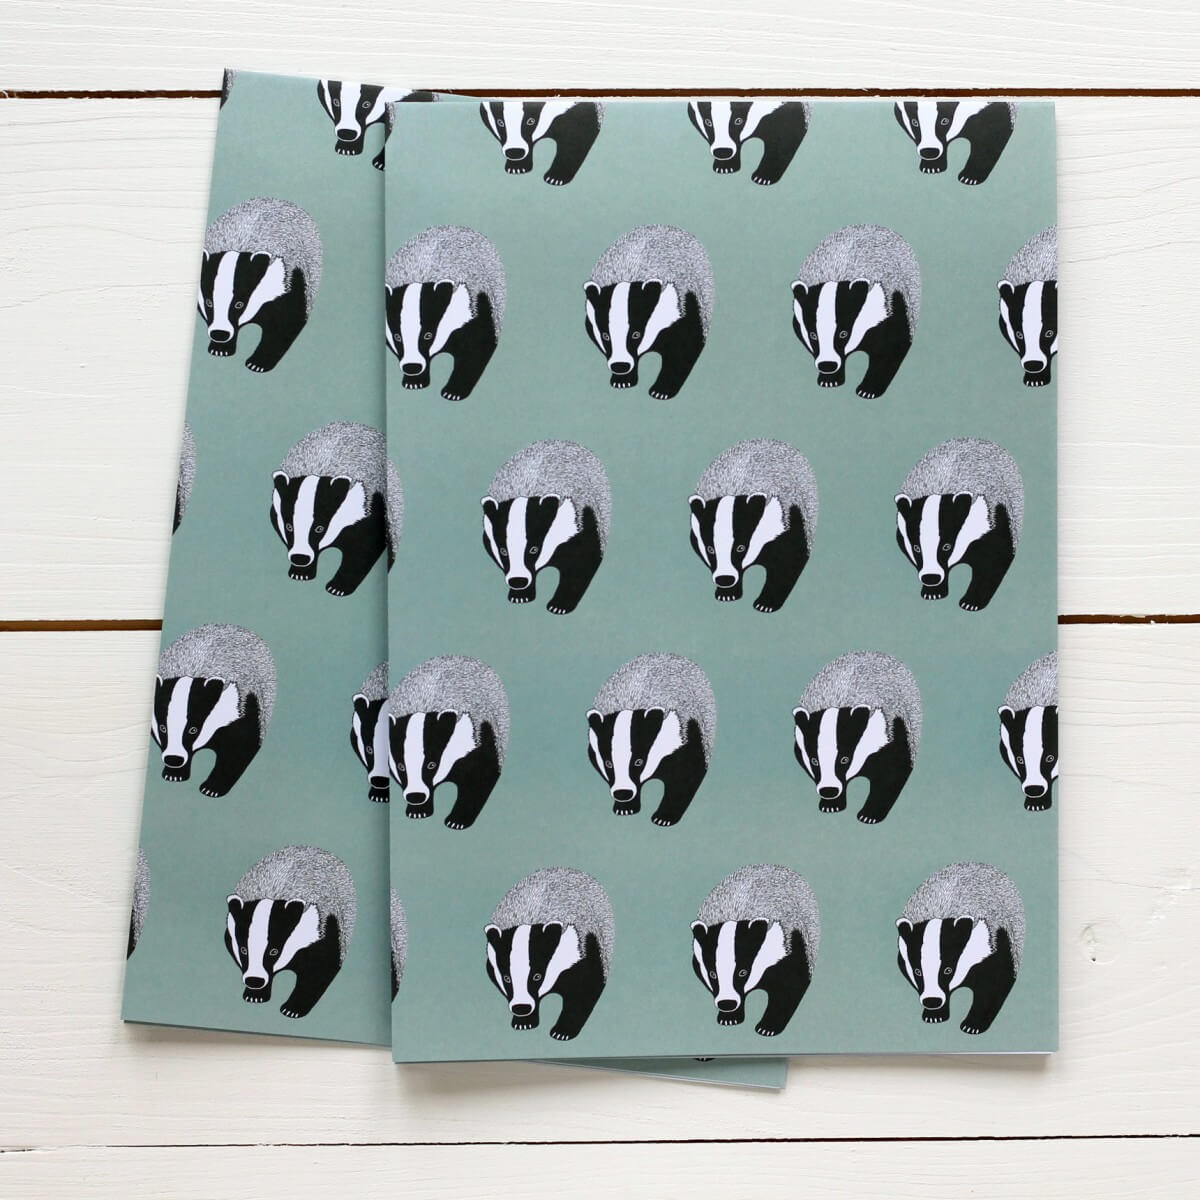 Badger Gift Wrap And Card Set By Bird